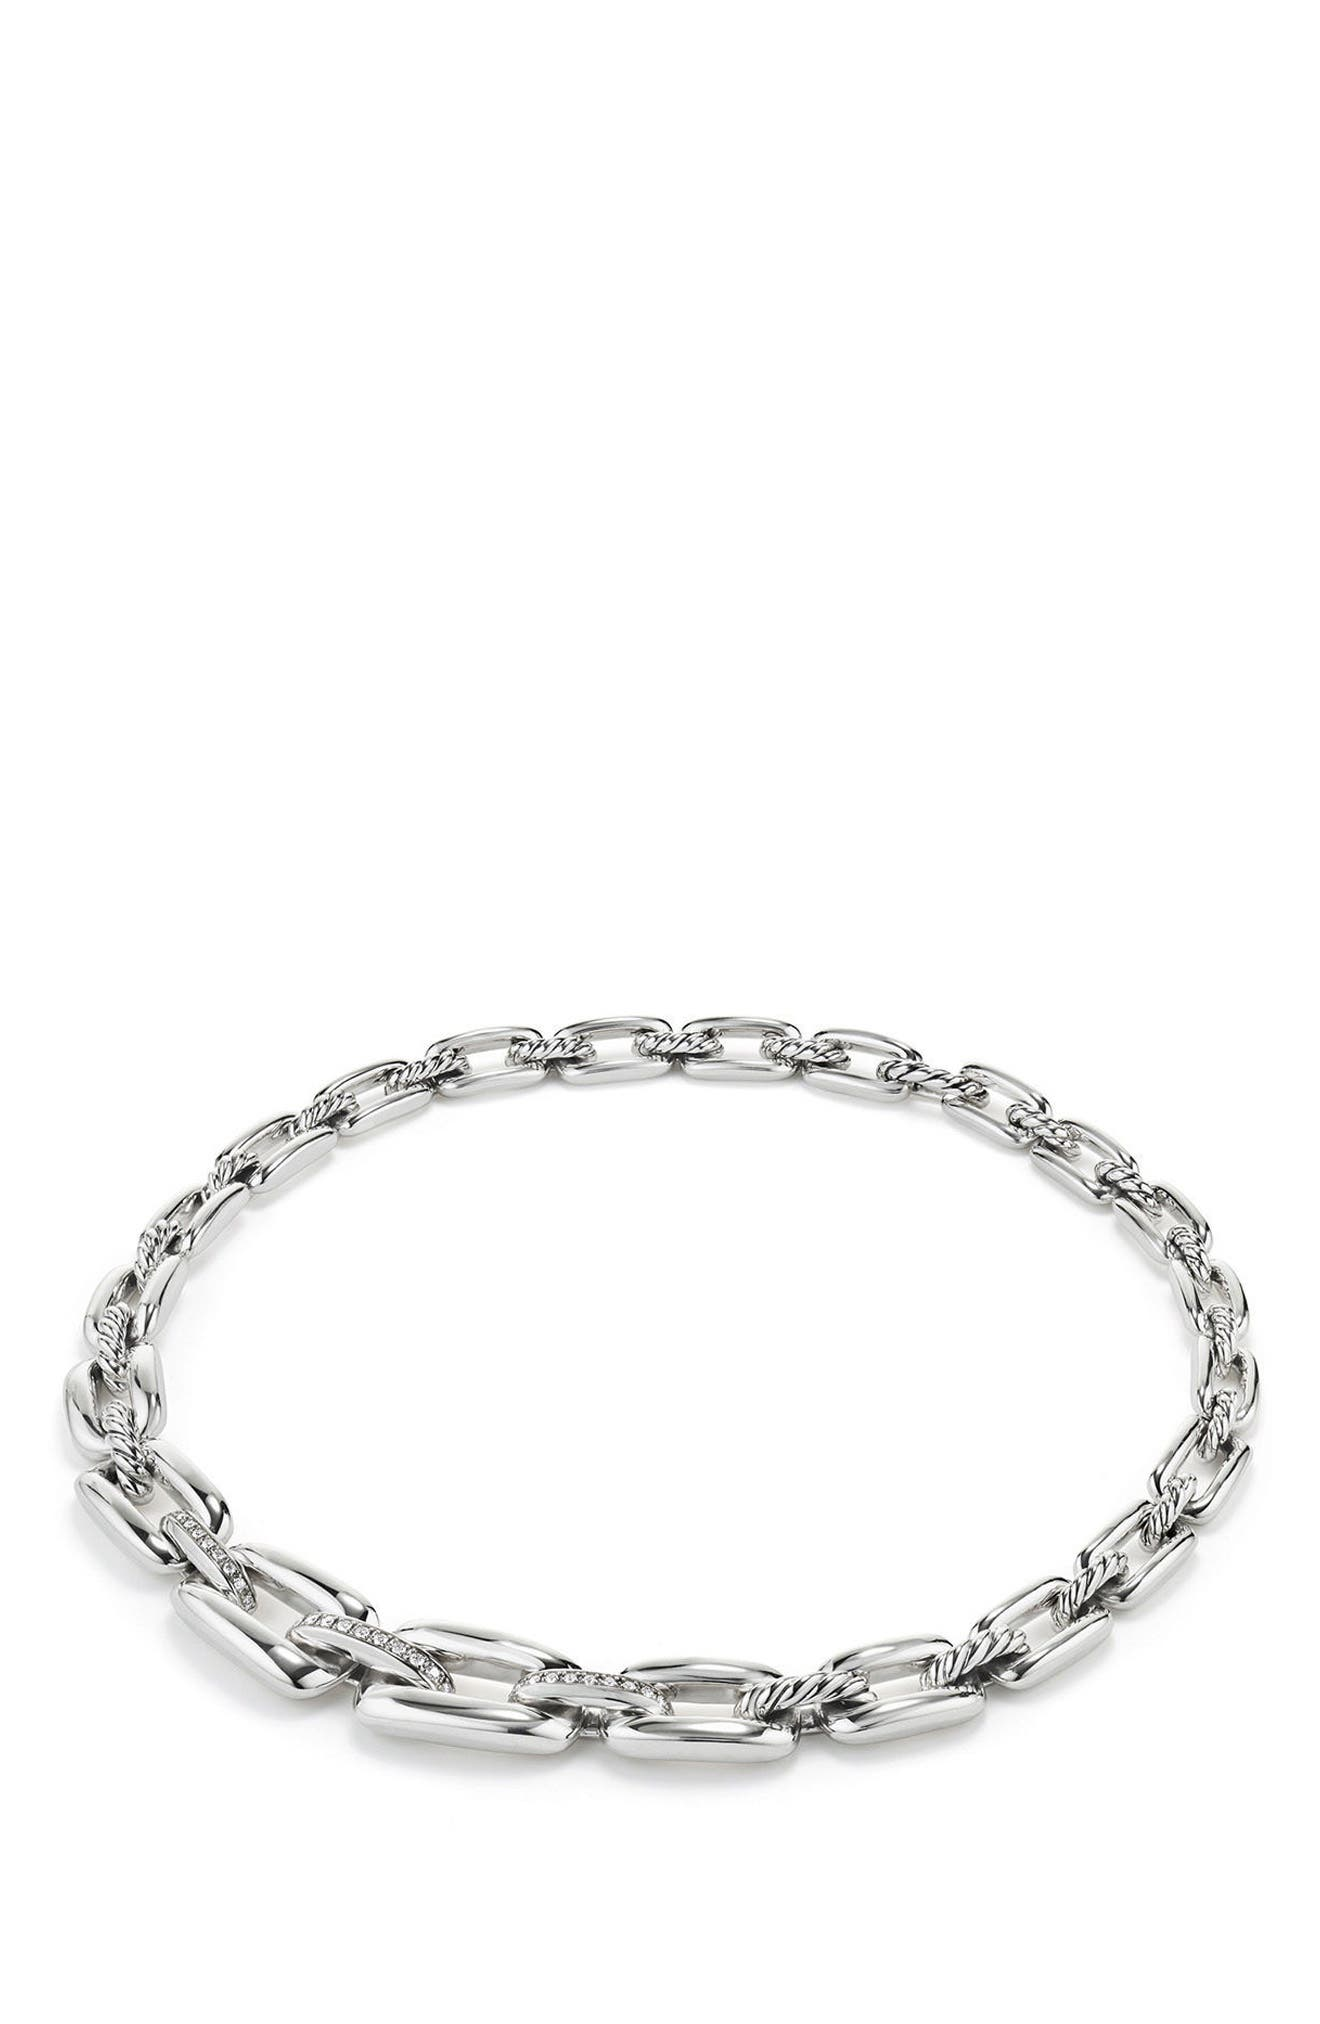 Wellesley Short Chain Necklace with Diamonds,                             Main thumbnail 1, color,                             Silver